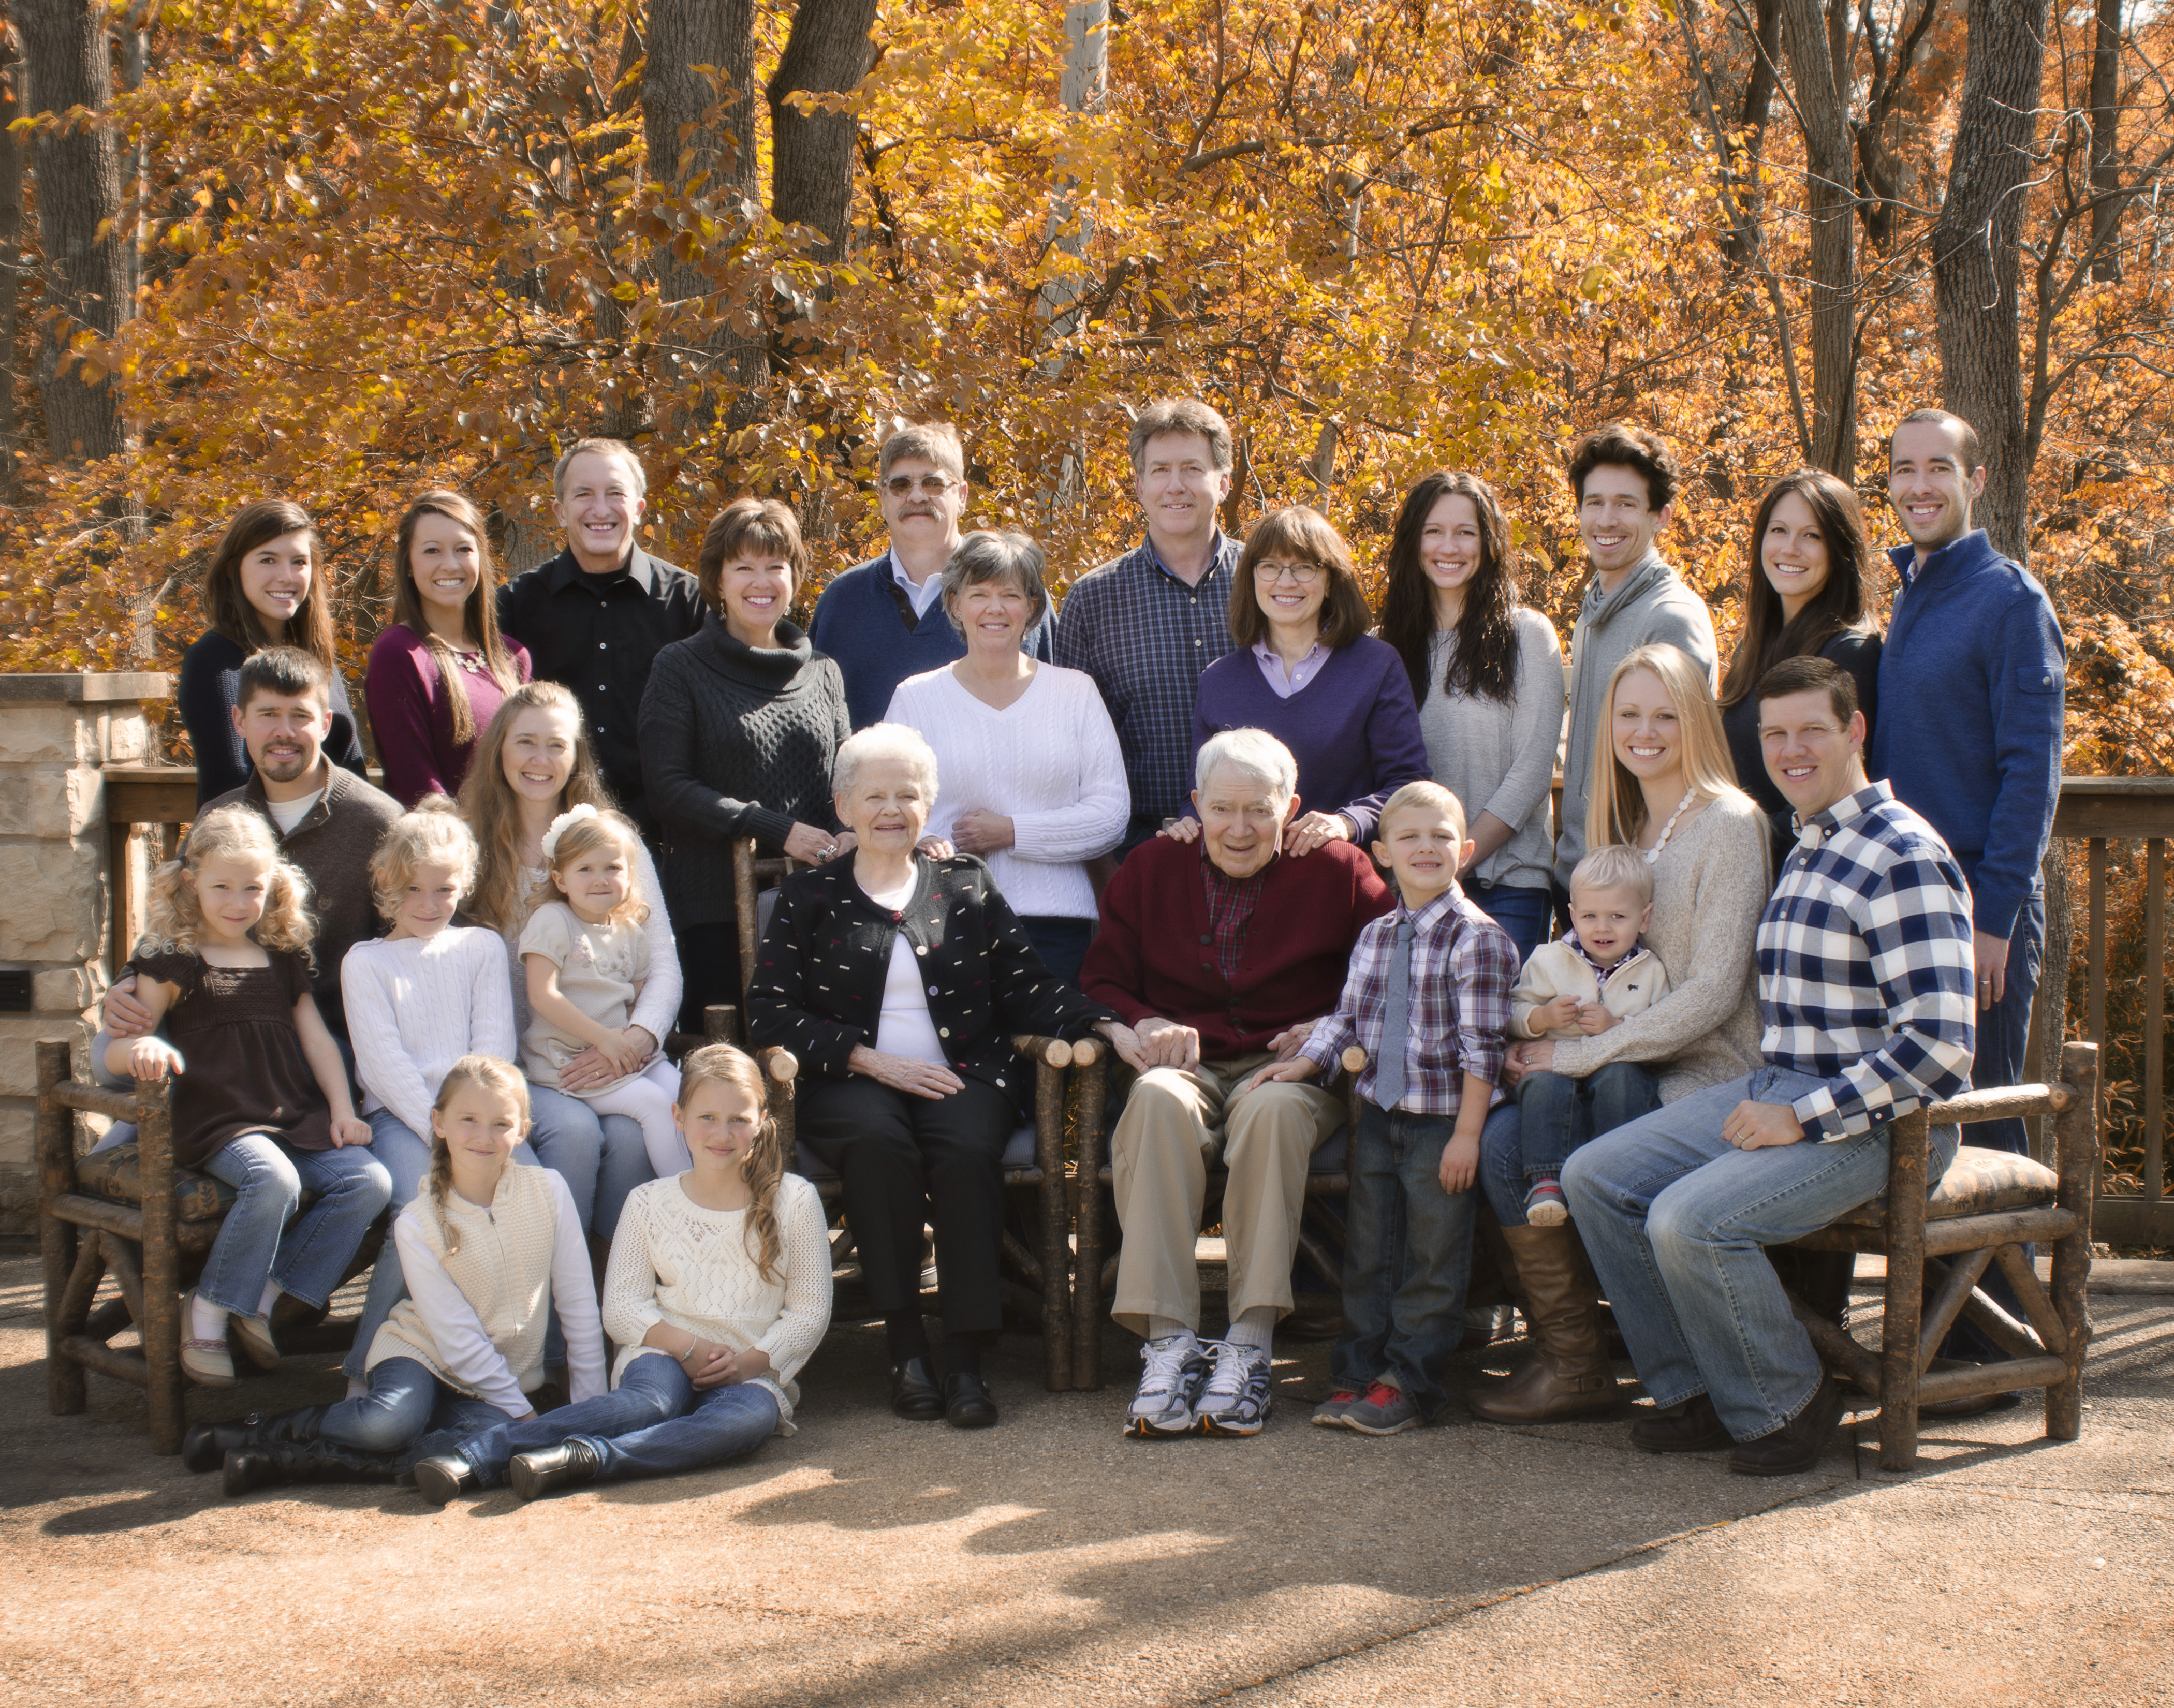 Fall Family Portrait At Aullwood Garden By Cleary Creative Photography In Dayton  Ohio